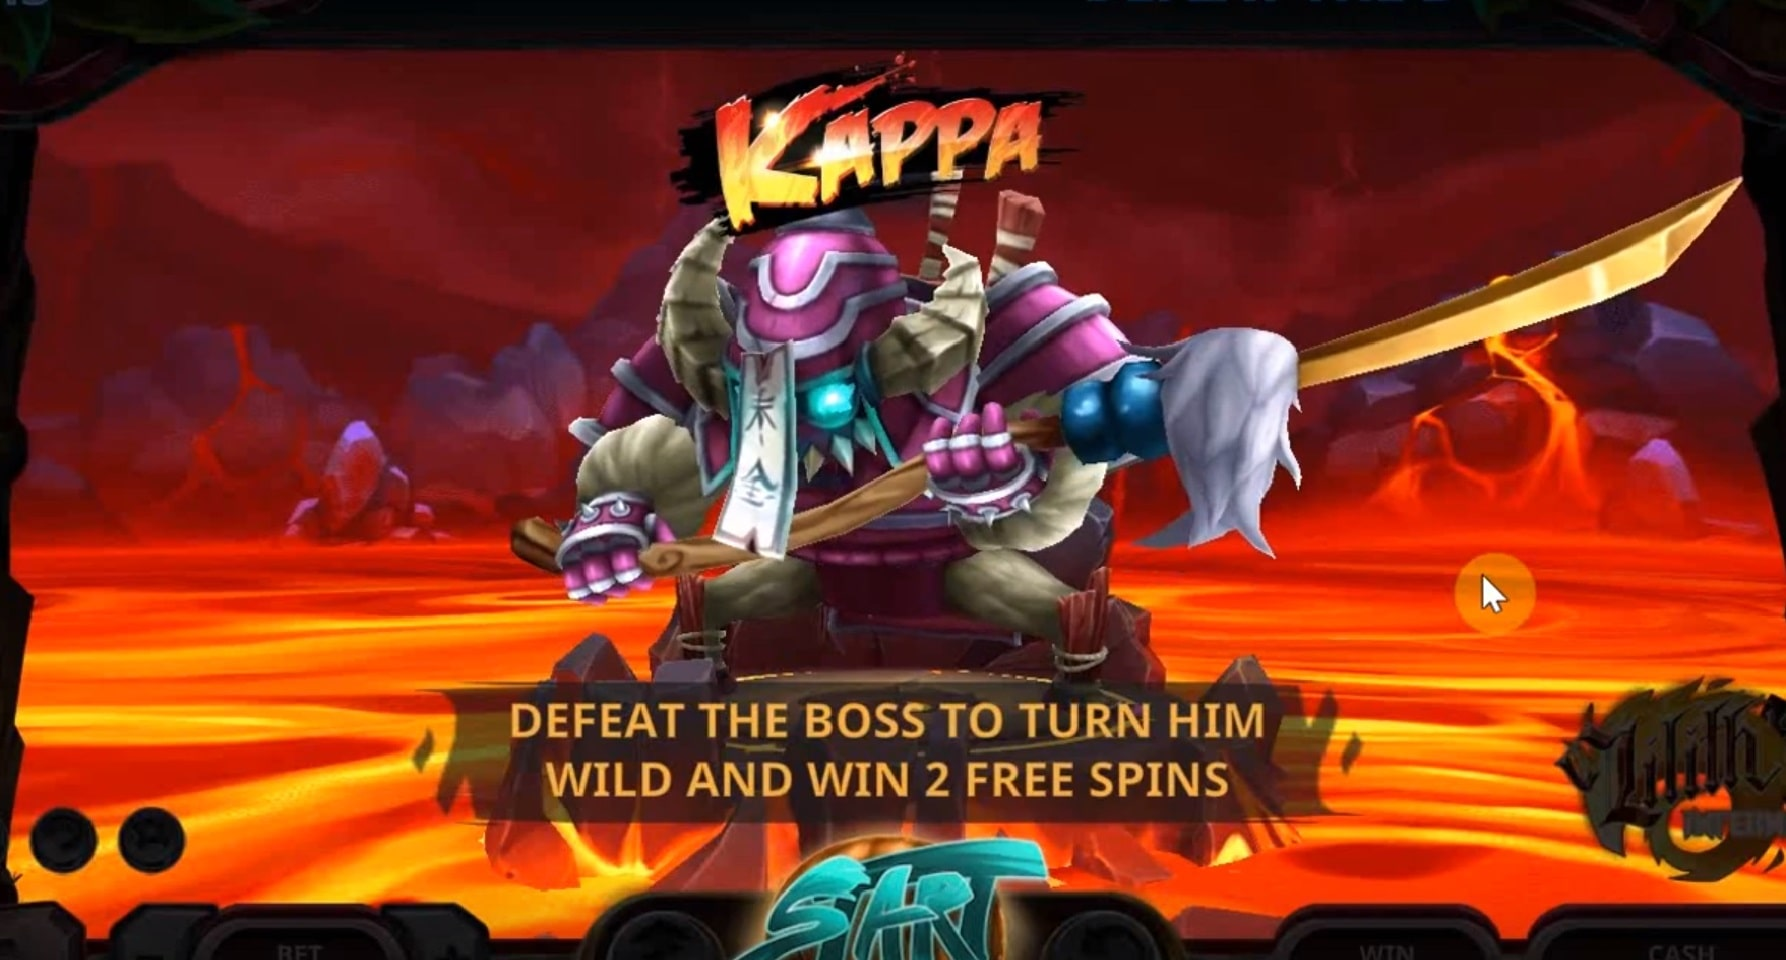 The level boss Kappa in the Lilith's Inferno slot from Yggdrasil.